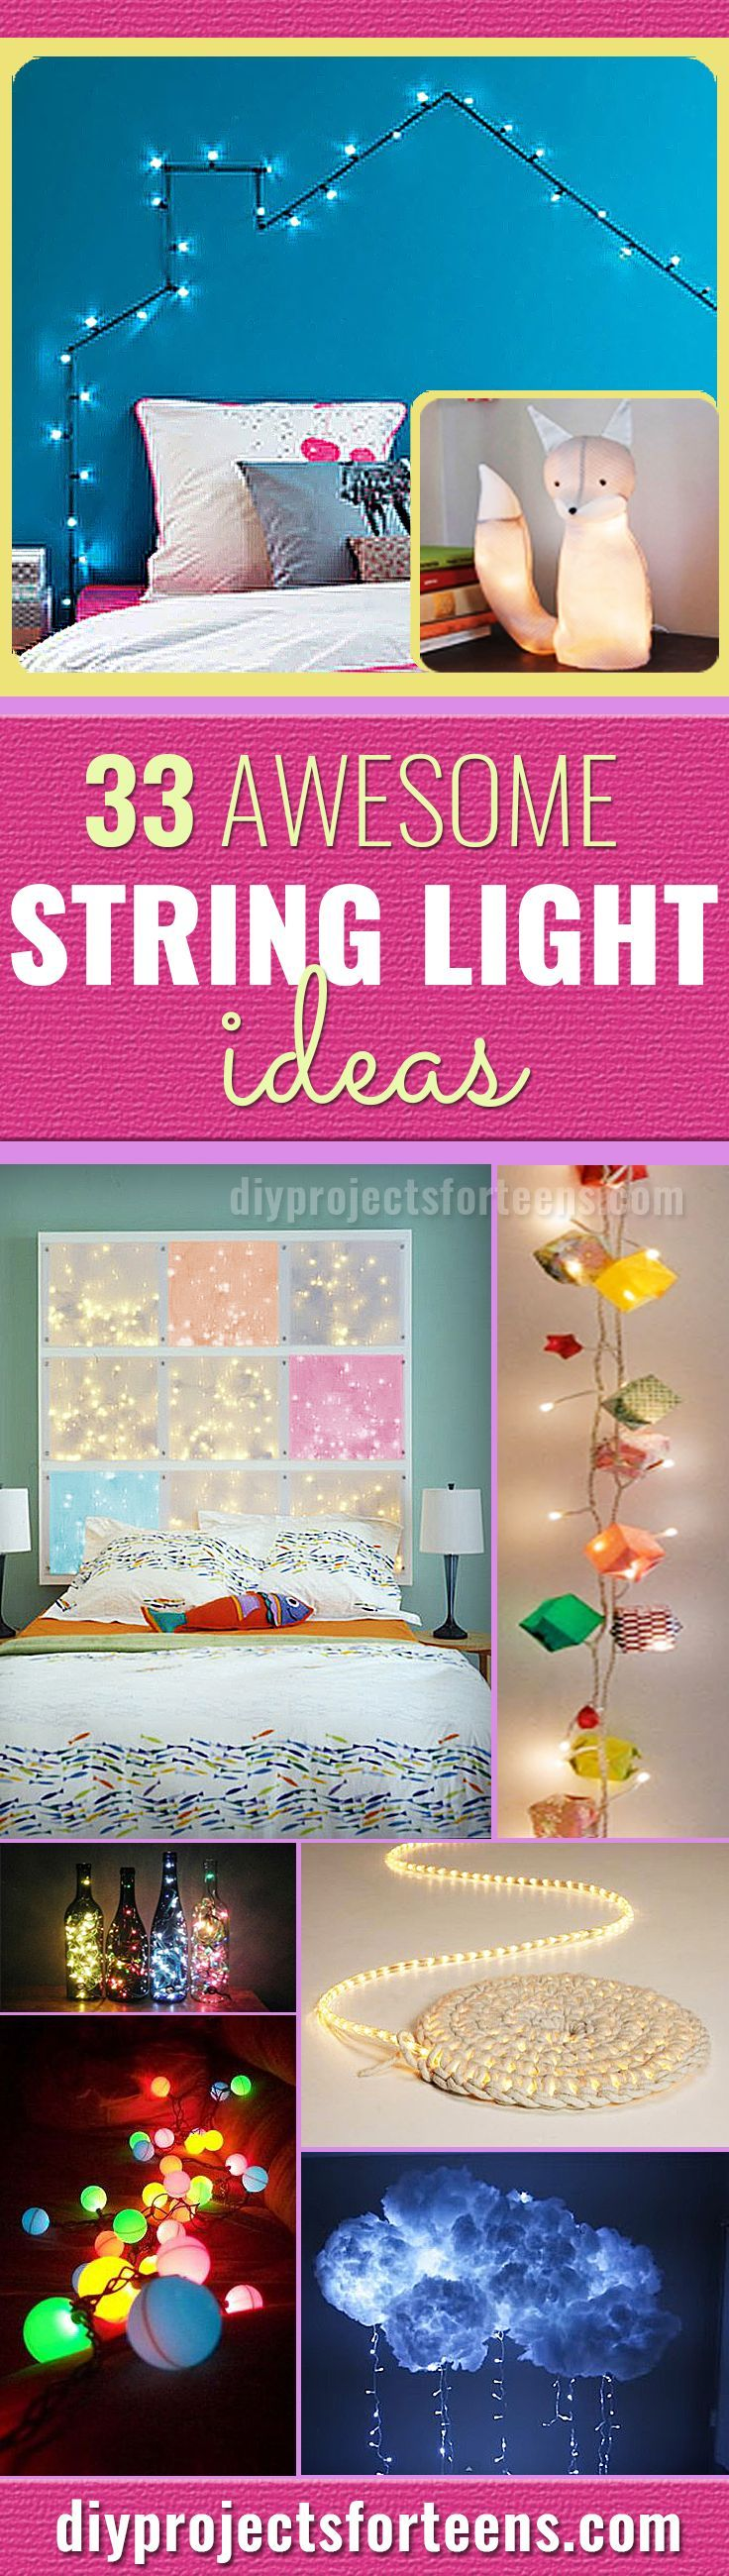 299 Best Craft Project Ideas Images On Pinterest